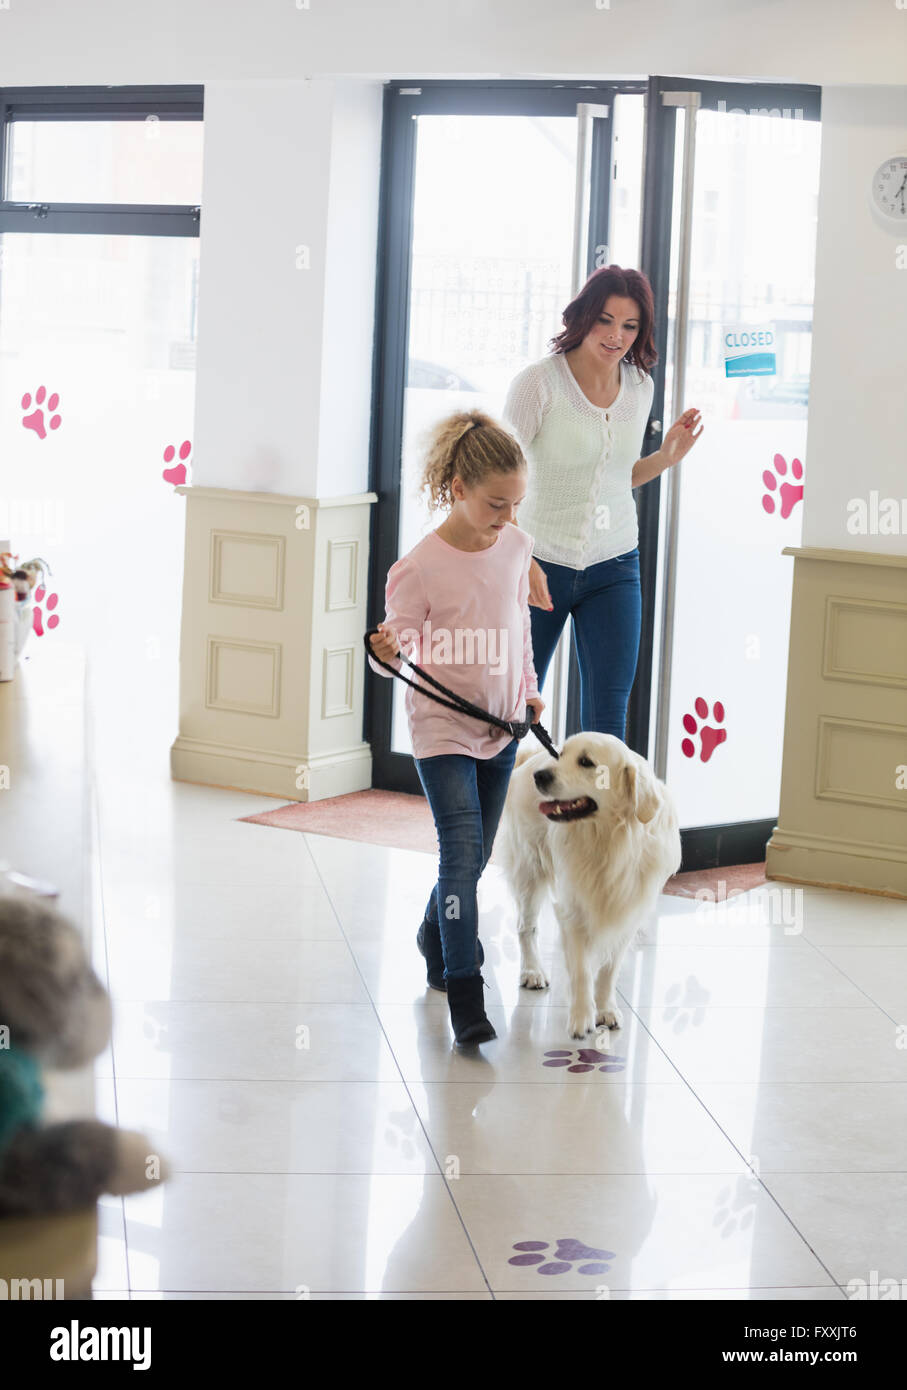 Mother and daughter with dog visiting clinic - Stock Image